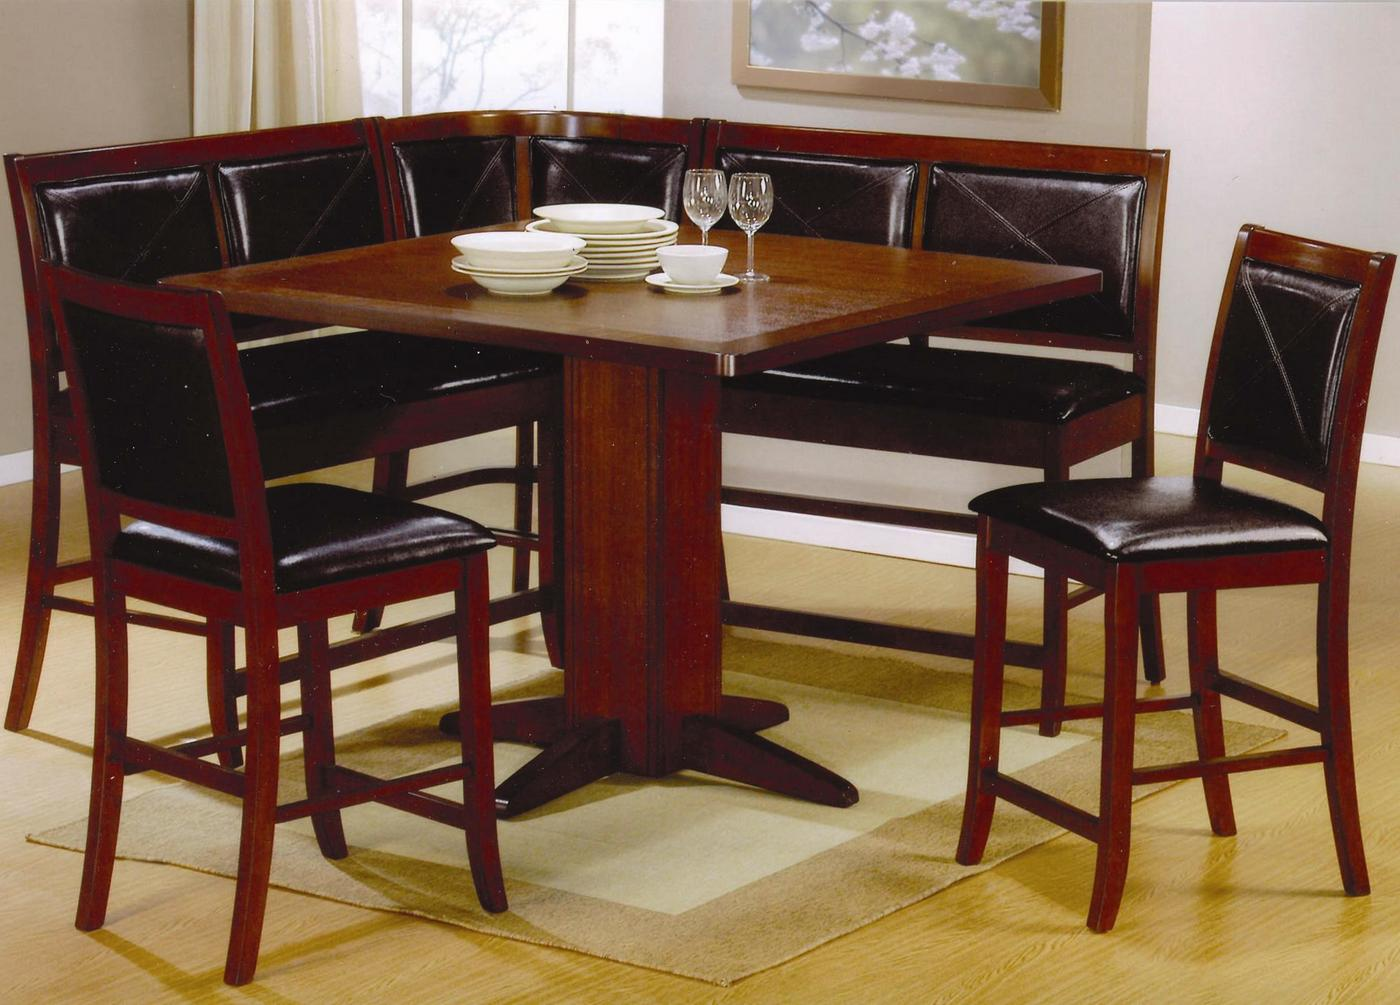 Corner unit dining set counter height 101791 101792 coaster for Corner dining table